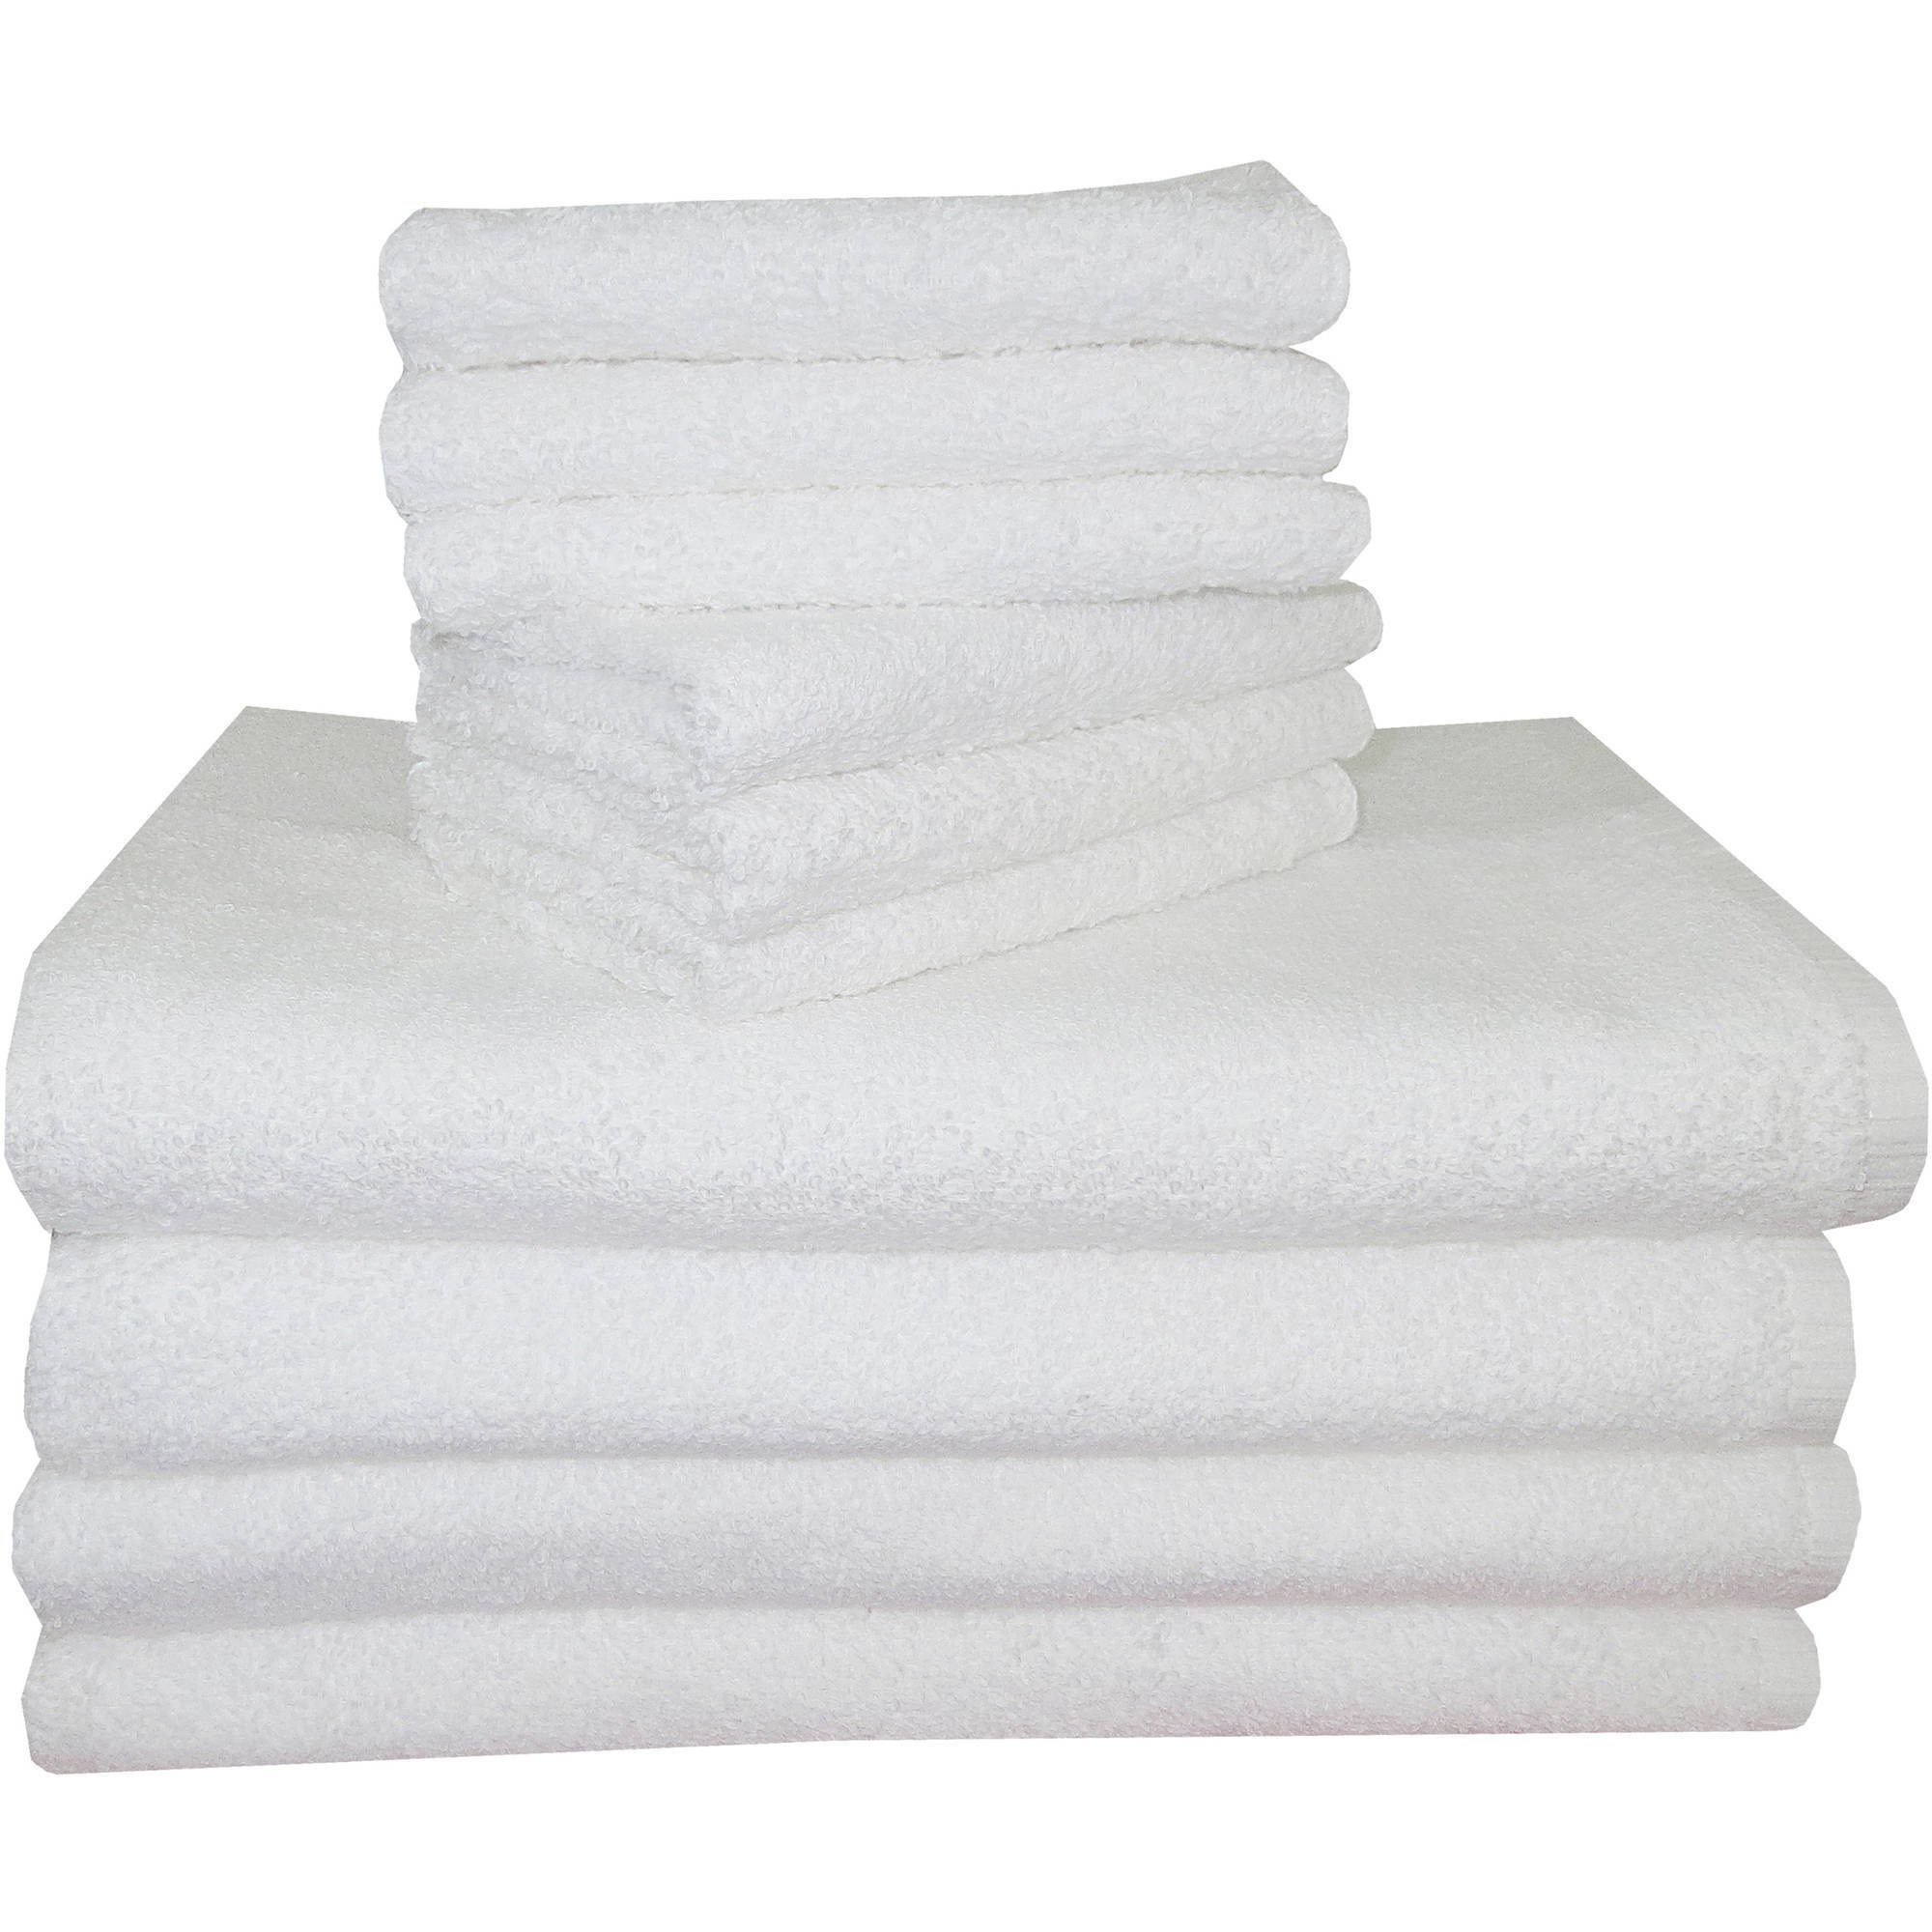 Mainstays 10pc Towel Set with 4 Bath Towels and 6 Wash Cloths